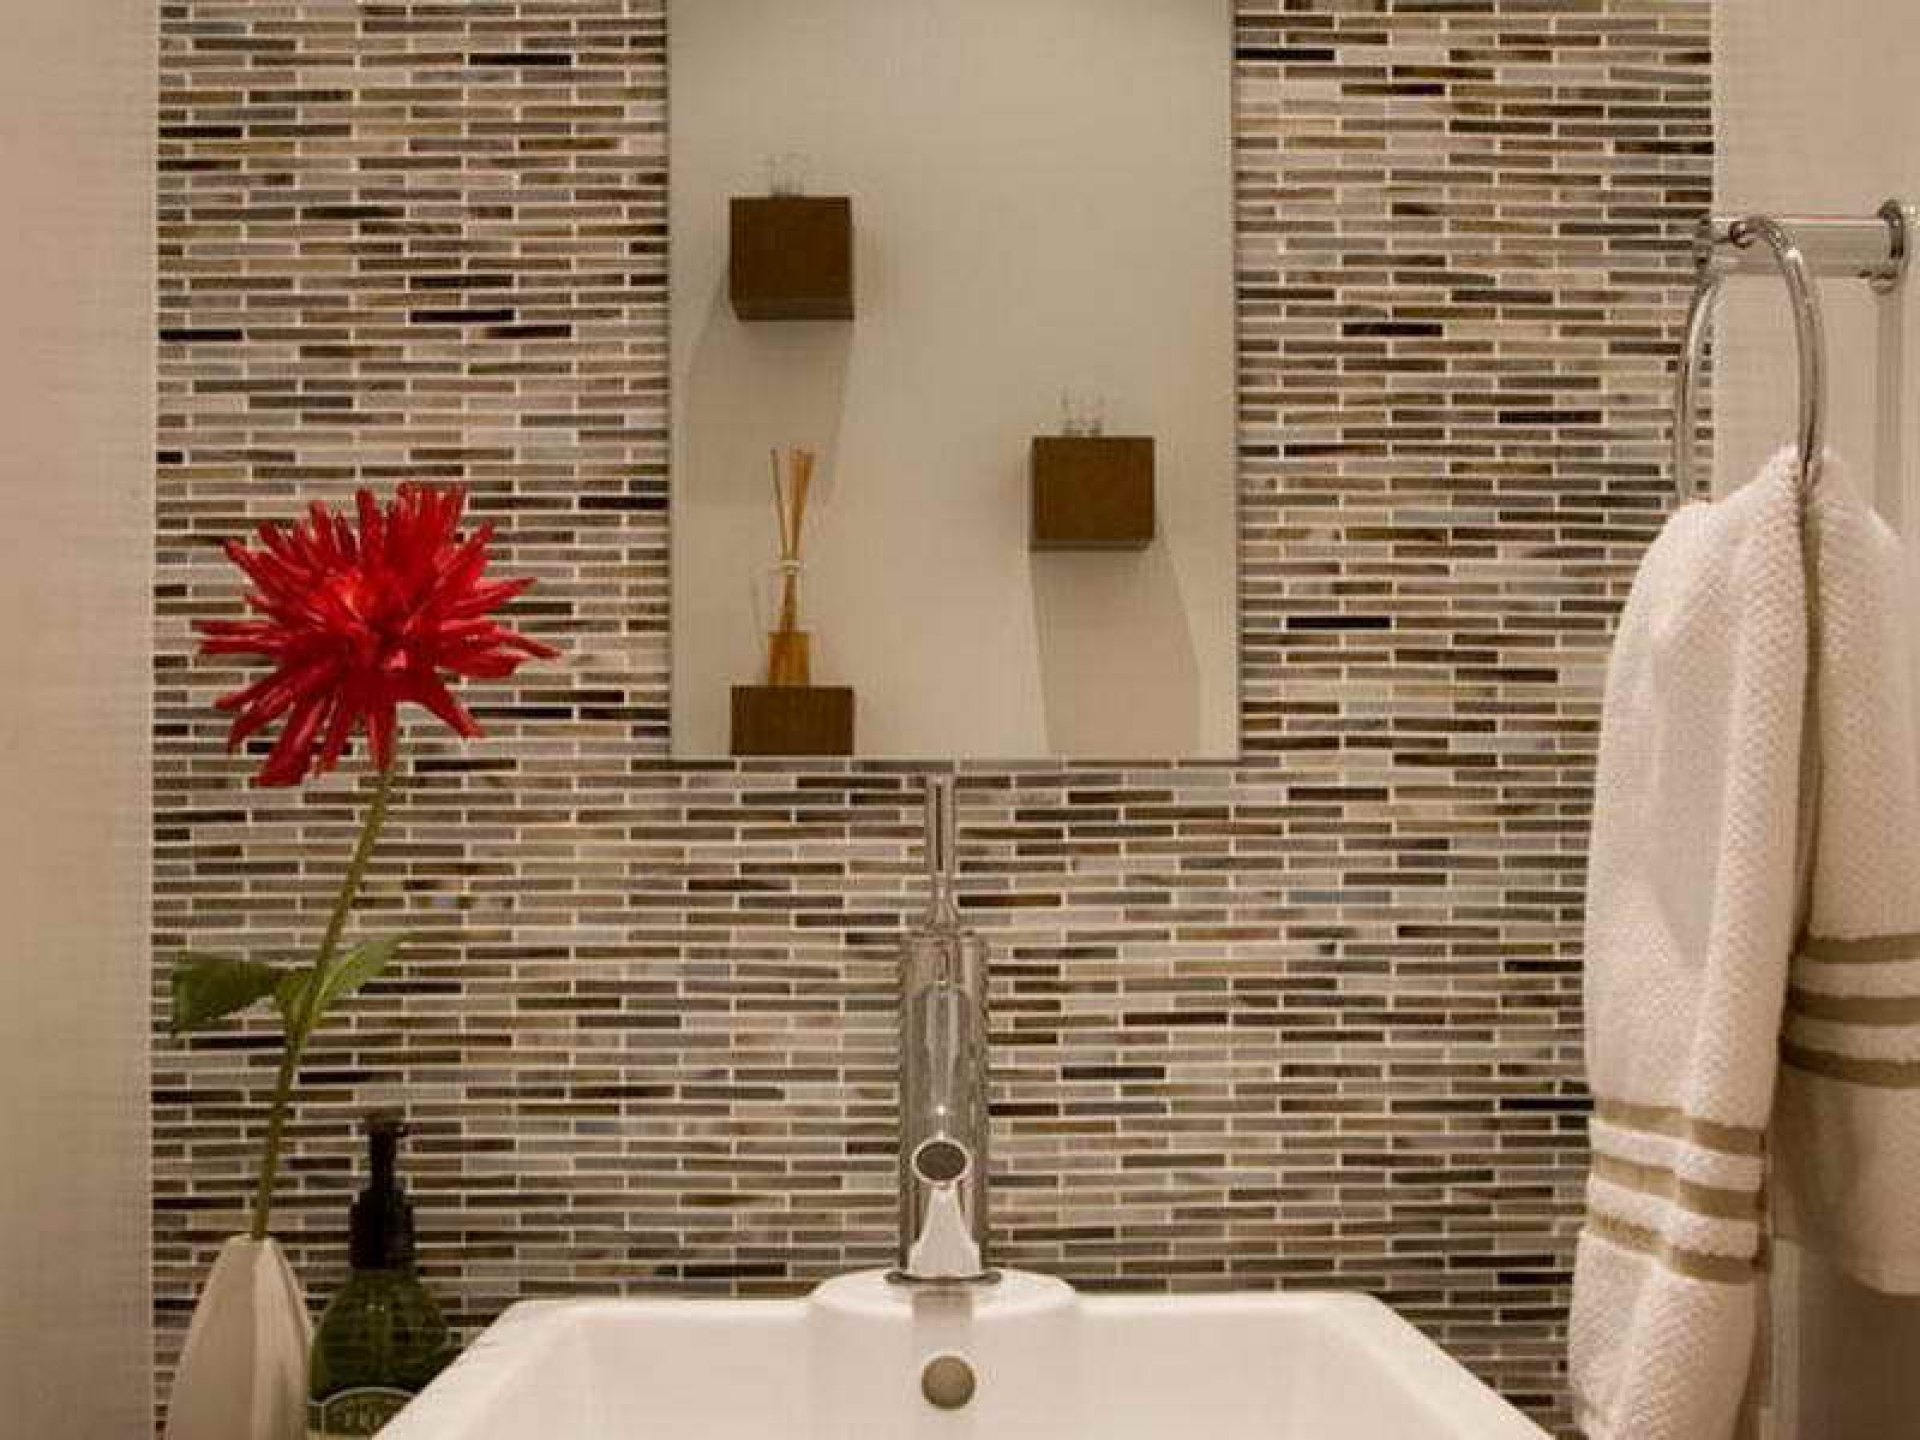 Bathroom Remodeling Tucson bathroom remodeling tucson az - free in home estimates